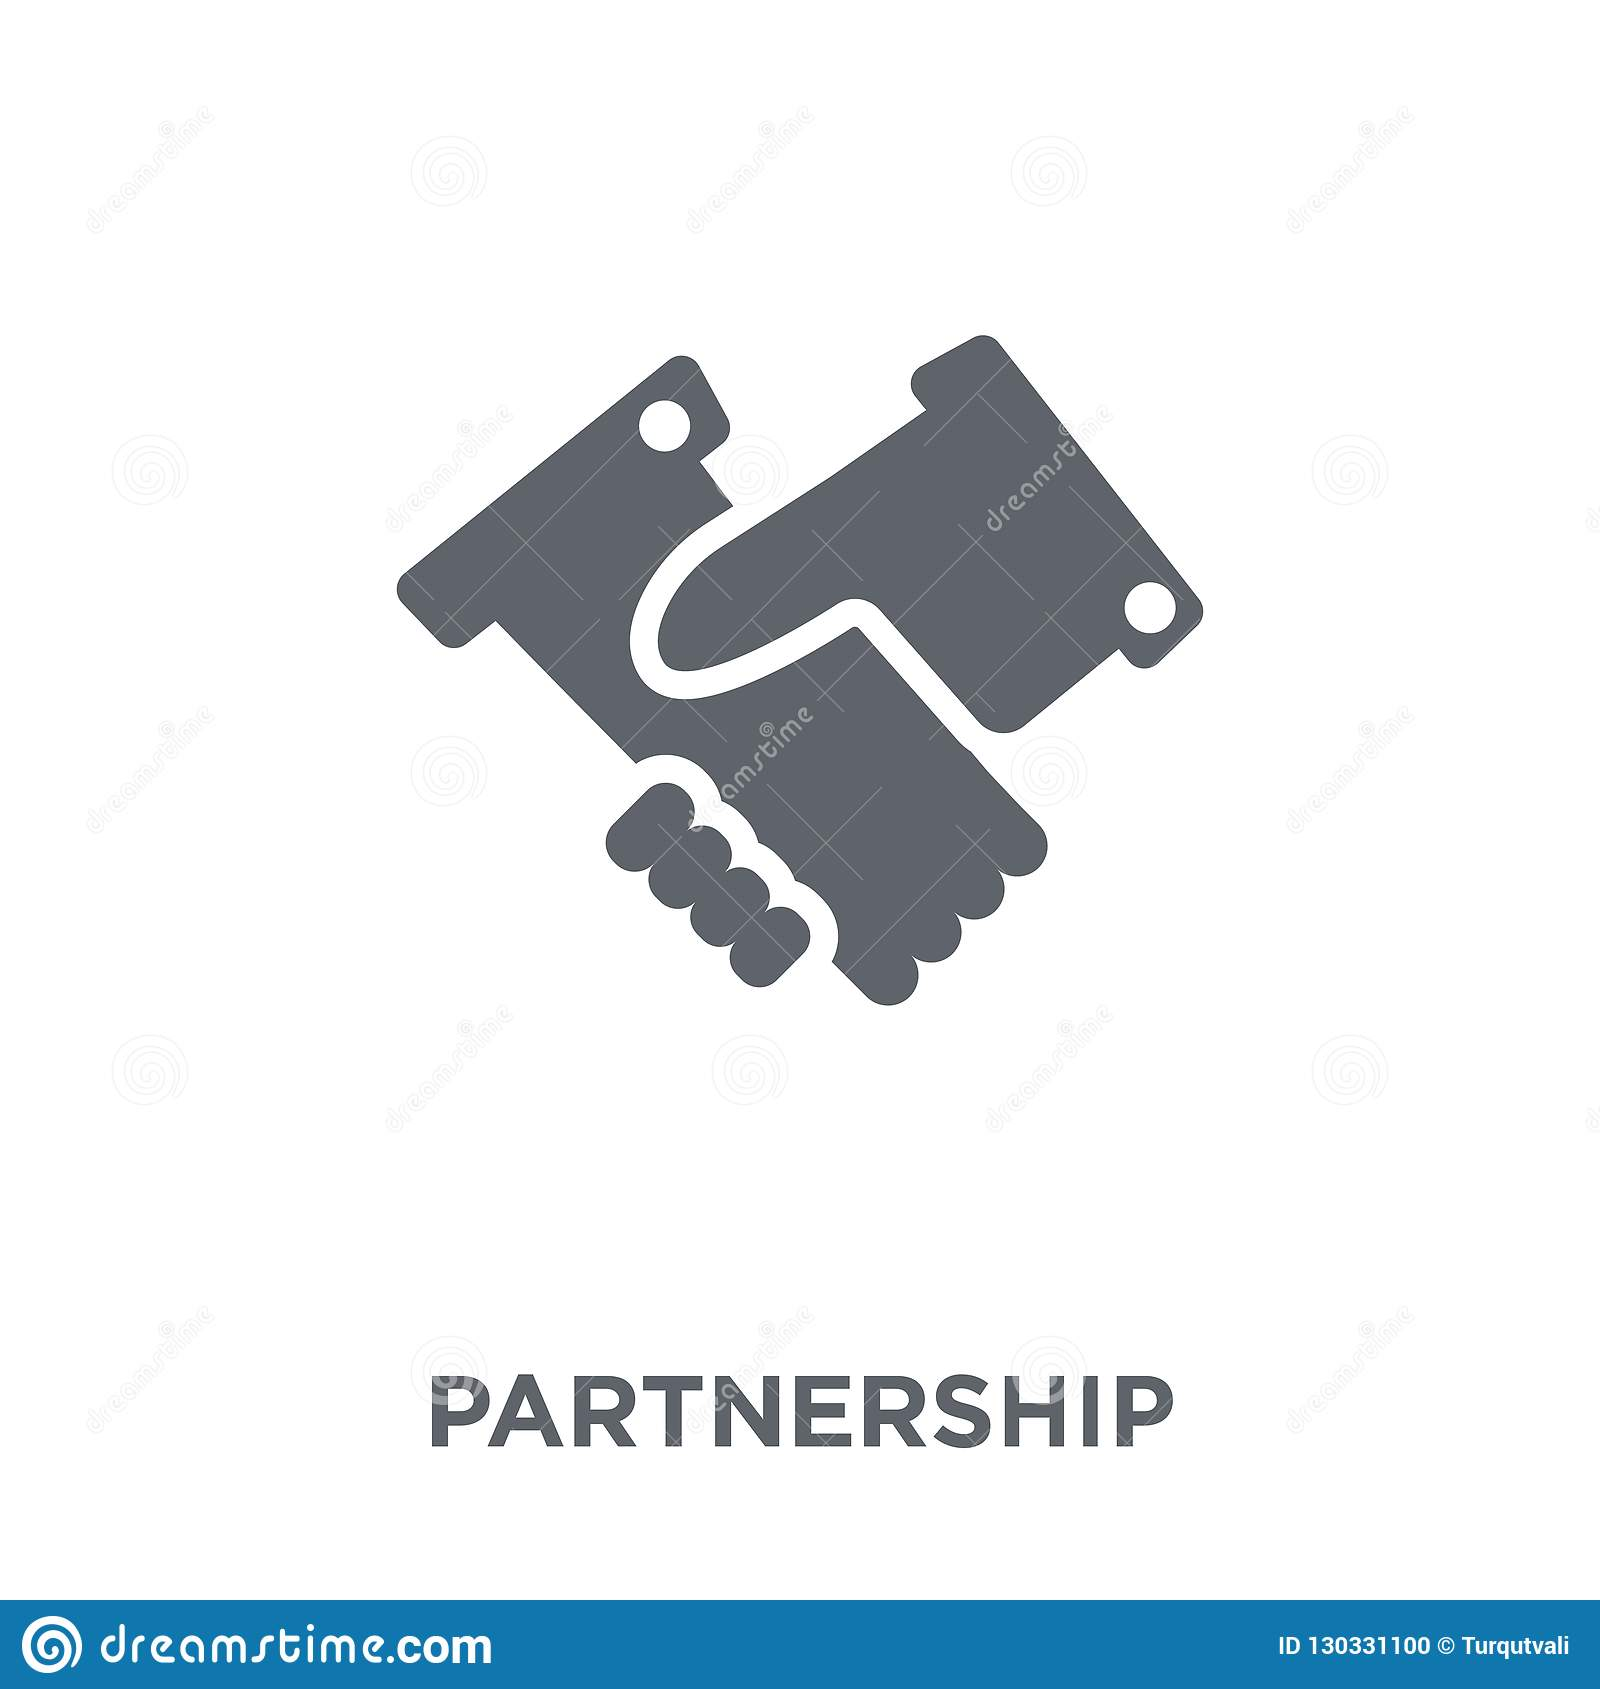 Partnership icon from collection.